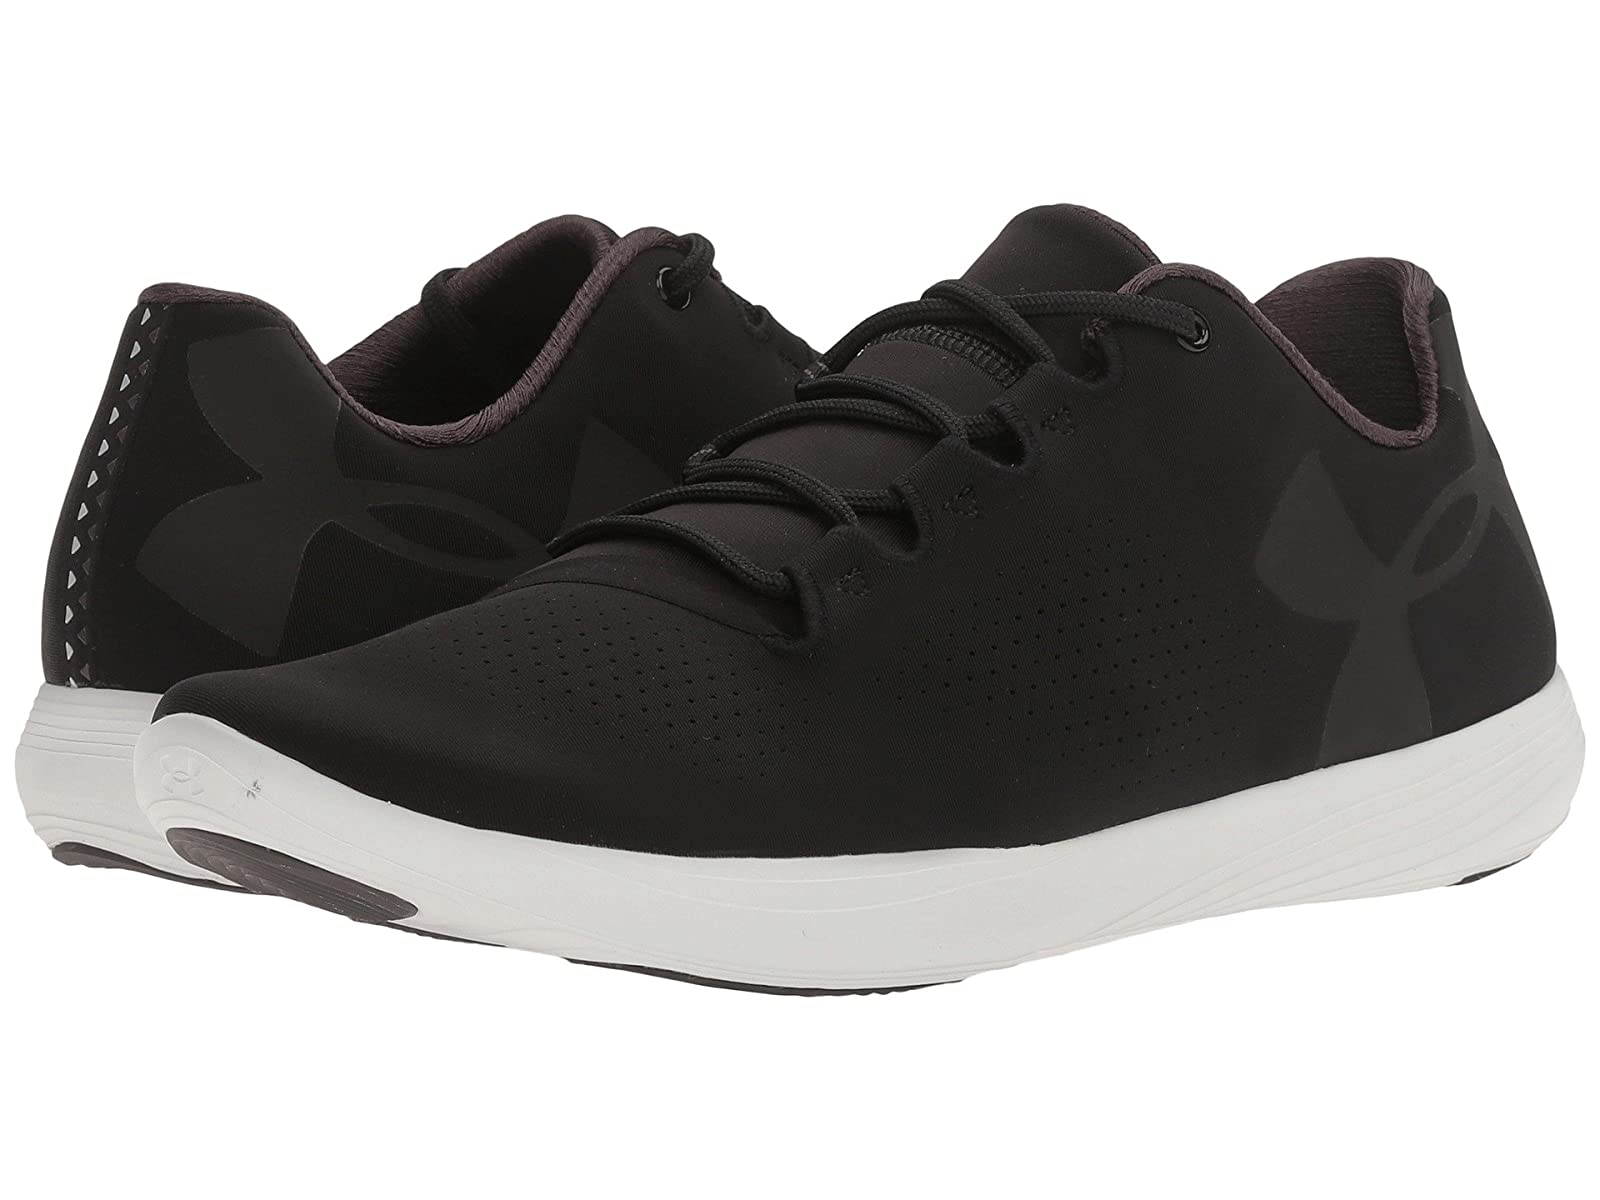 Under Armour UA Street Precision LowCheap and distinctive eye-catching shoes